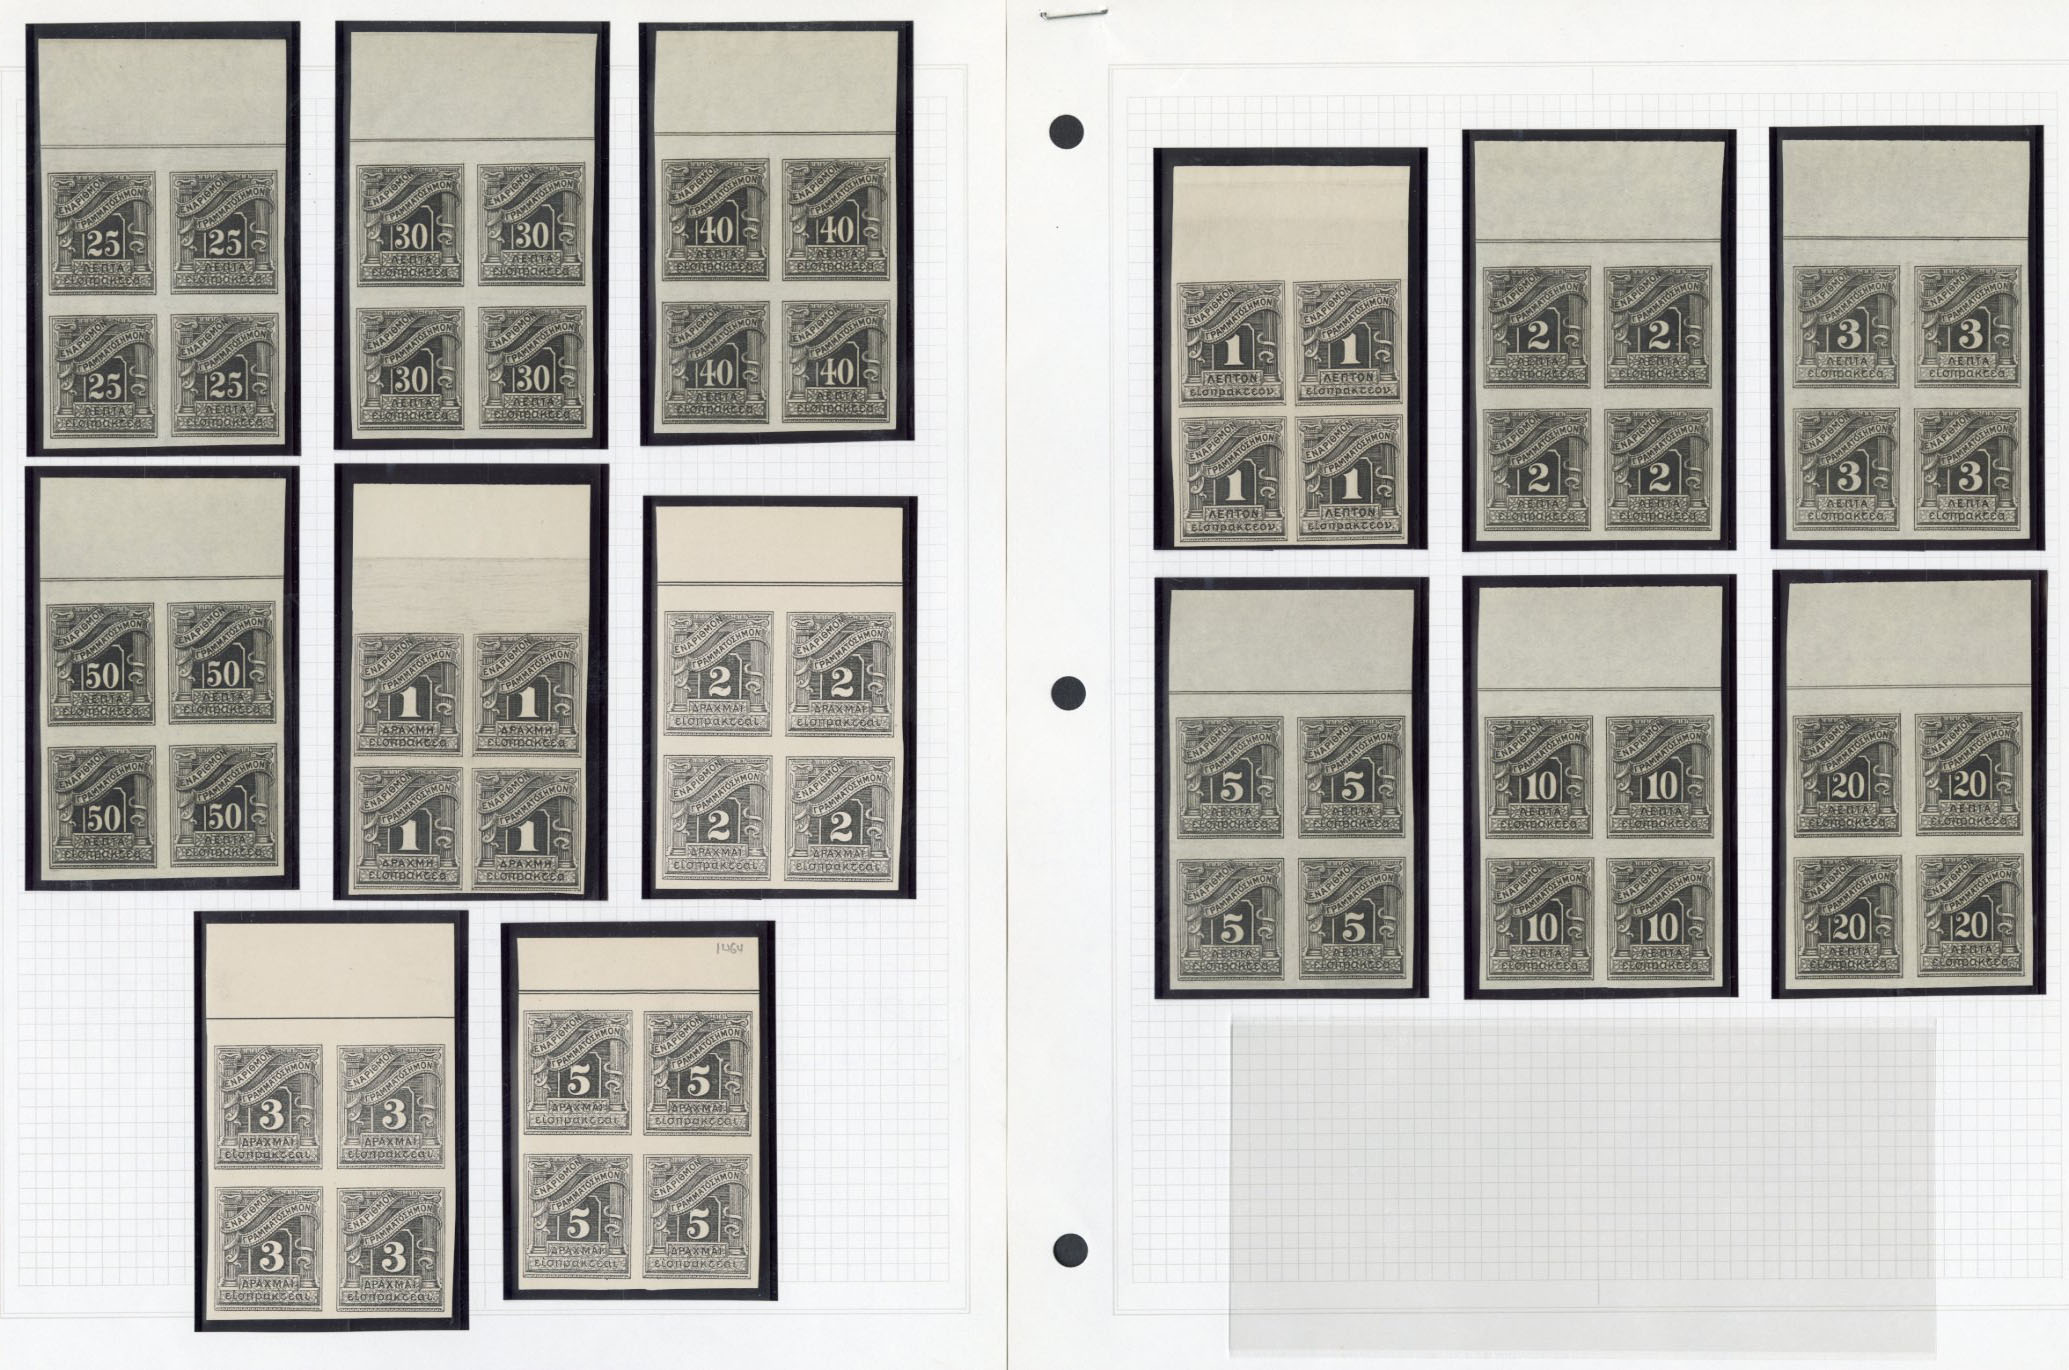 Lot 893 - LITHUANIA  Air Post  -  Cherrystone Auctions U.S. & Worldwide Stamps & Postal History